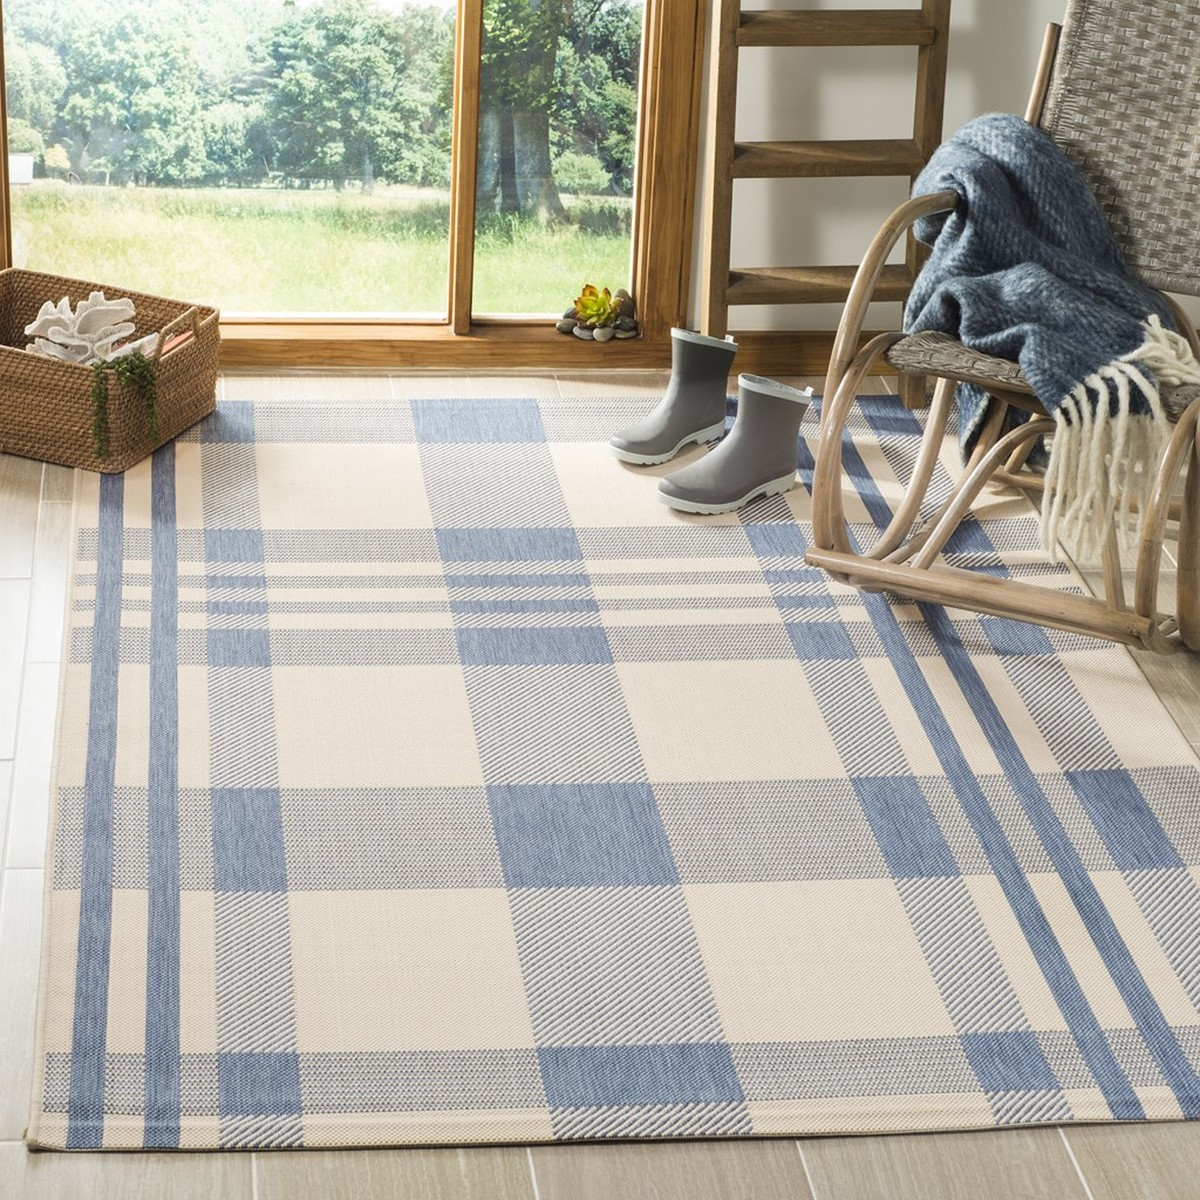 Blue Plaid Outdoor Area Rug Safavieh Com